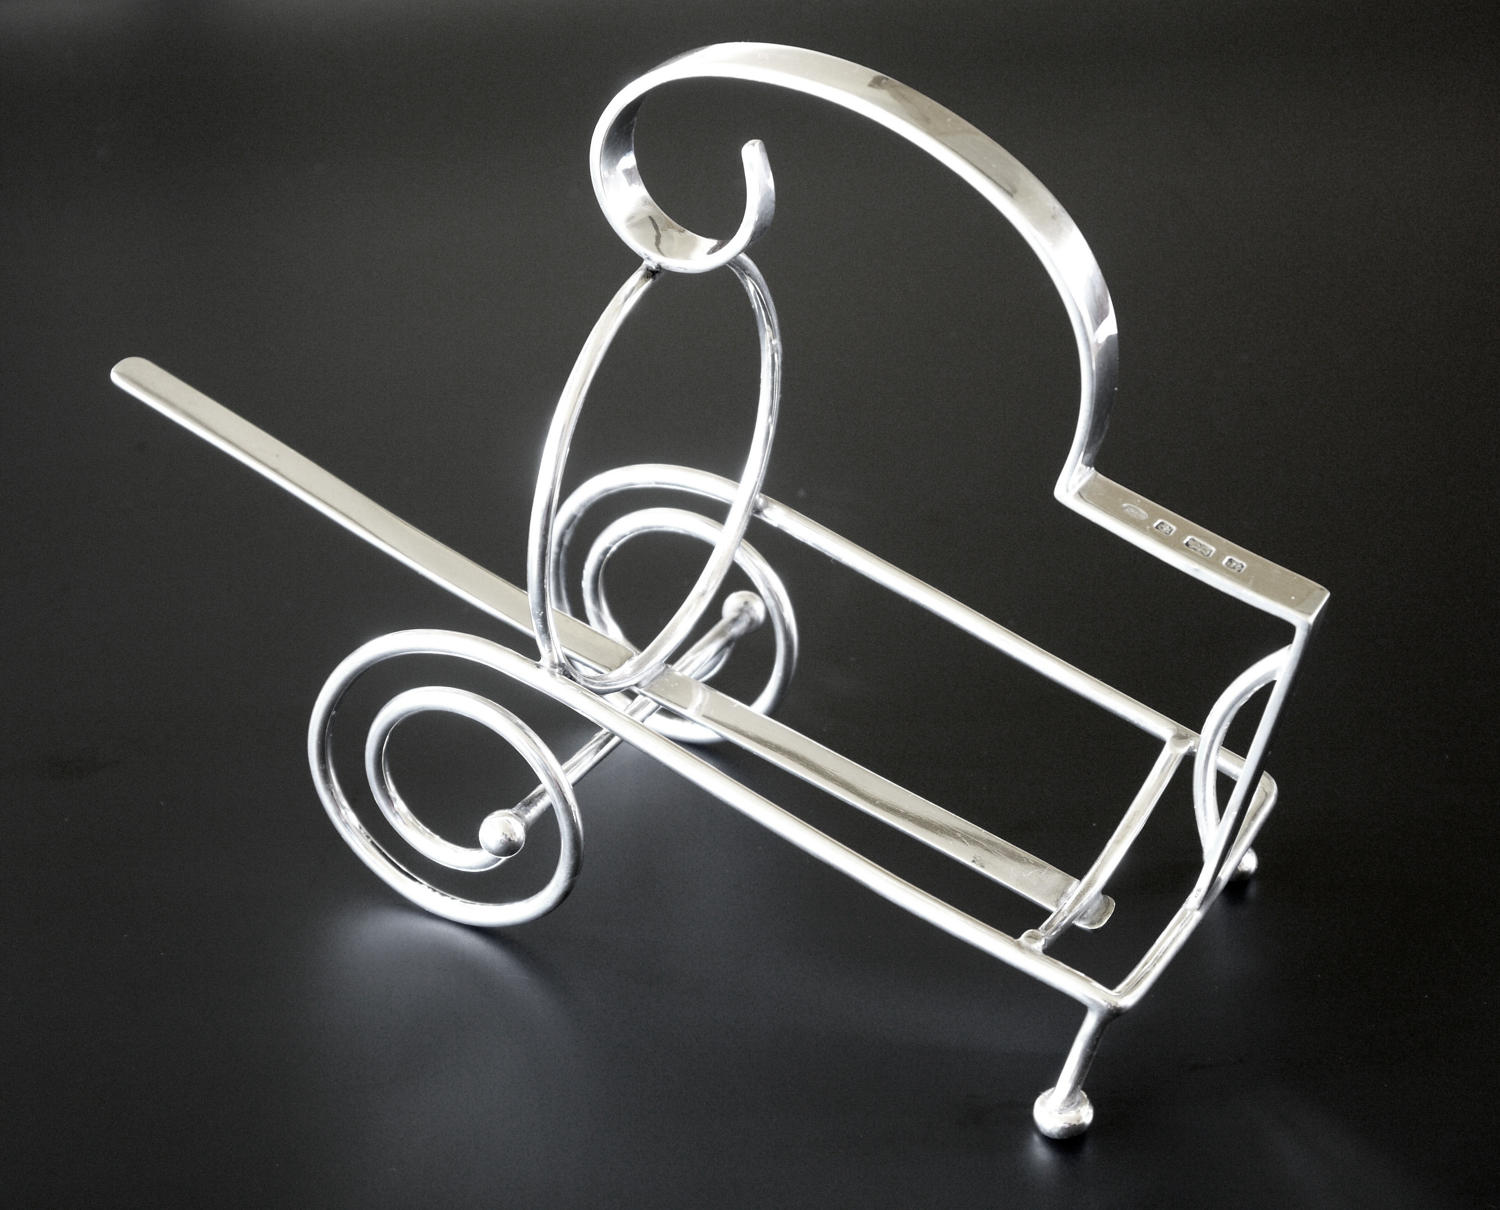 A quirky silver bottle cradle